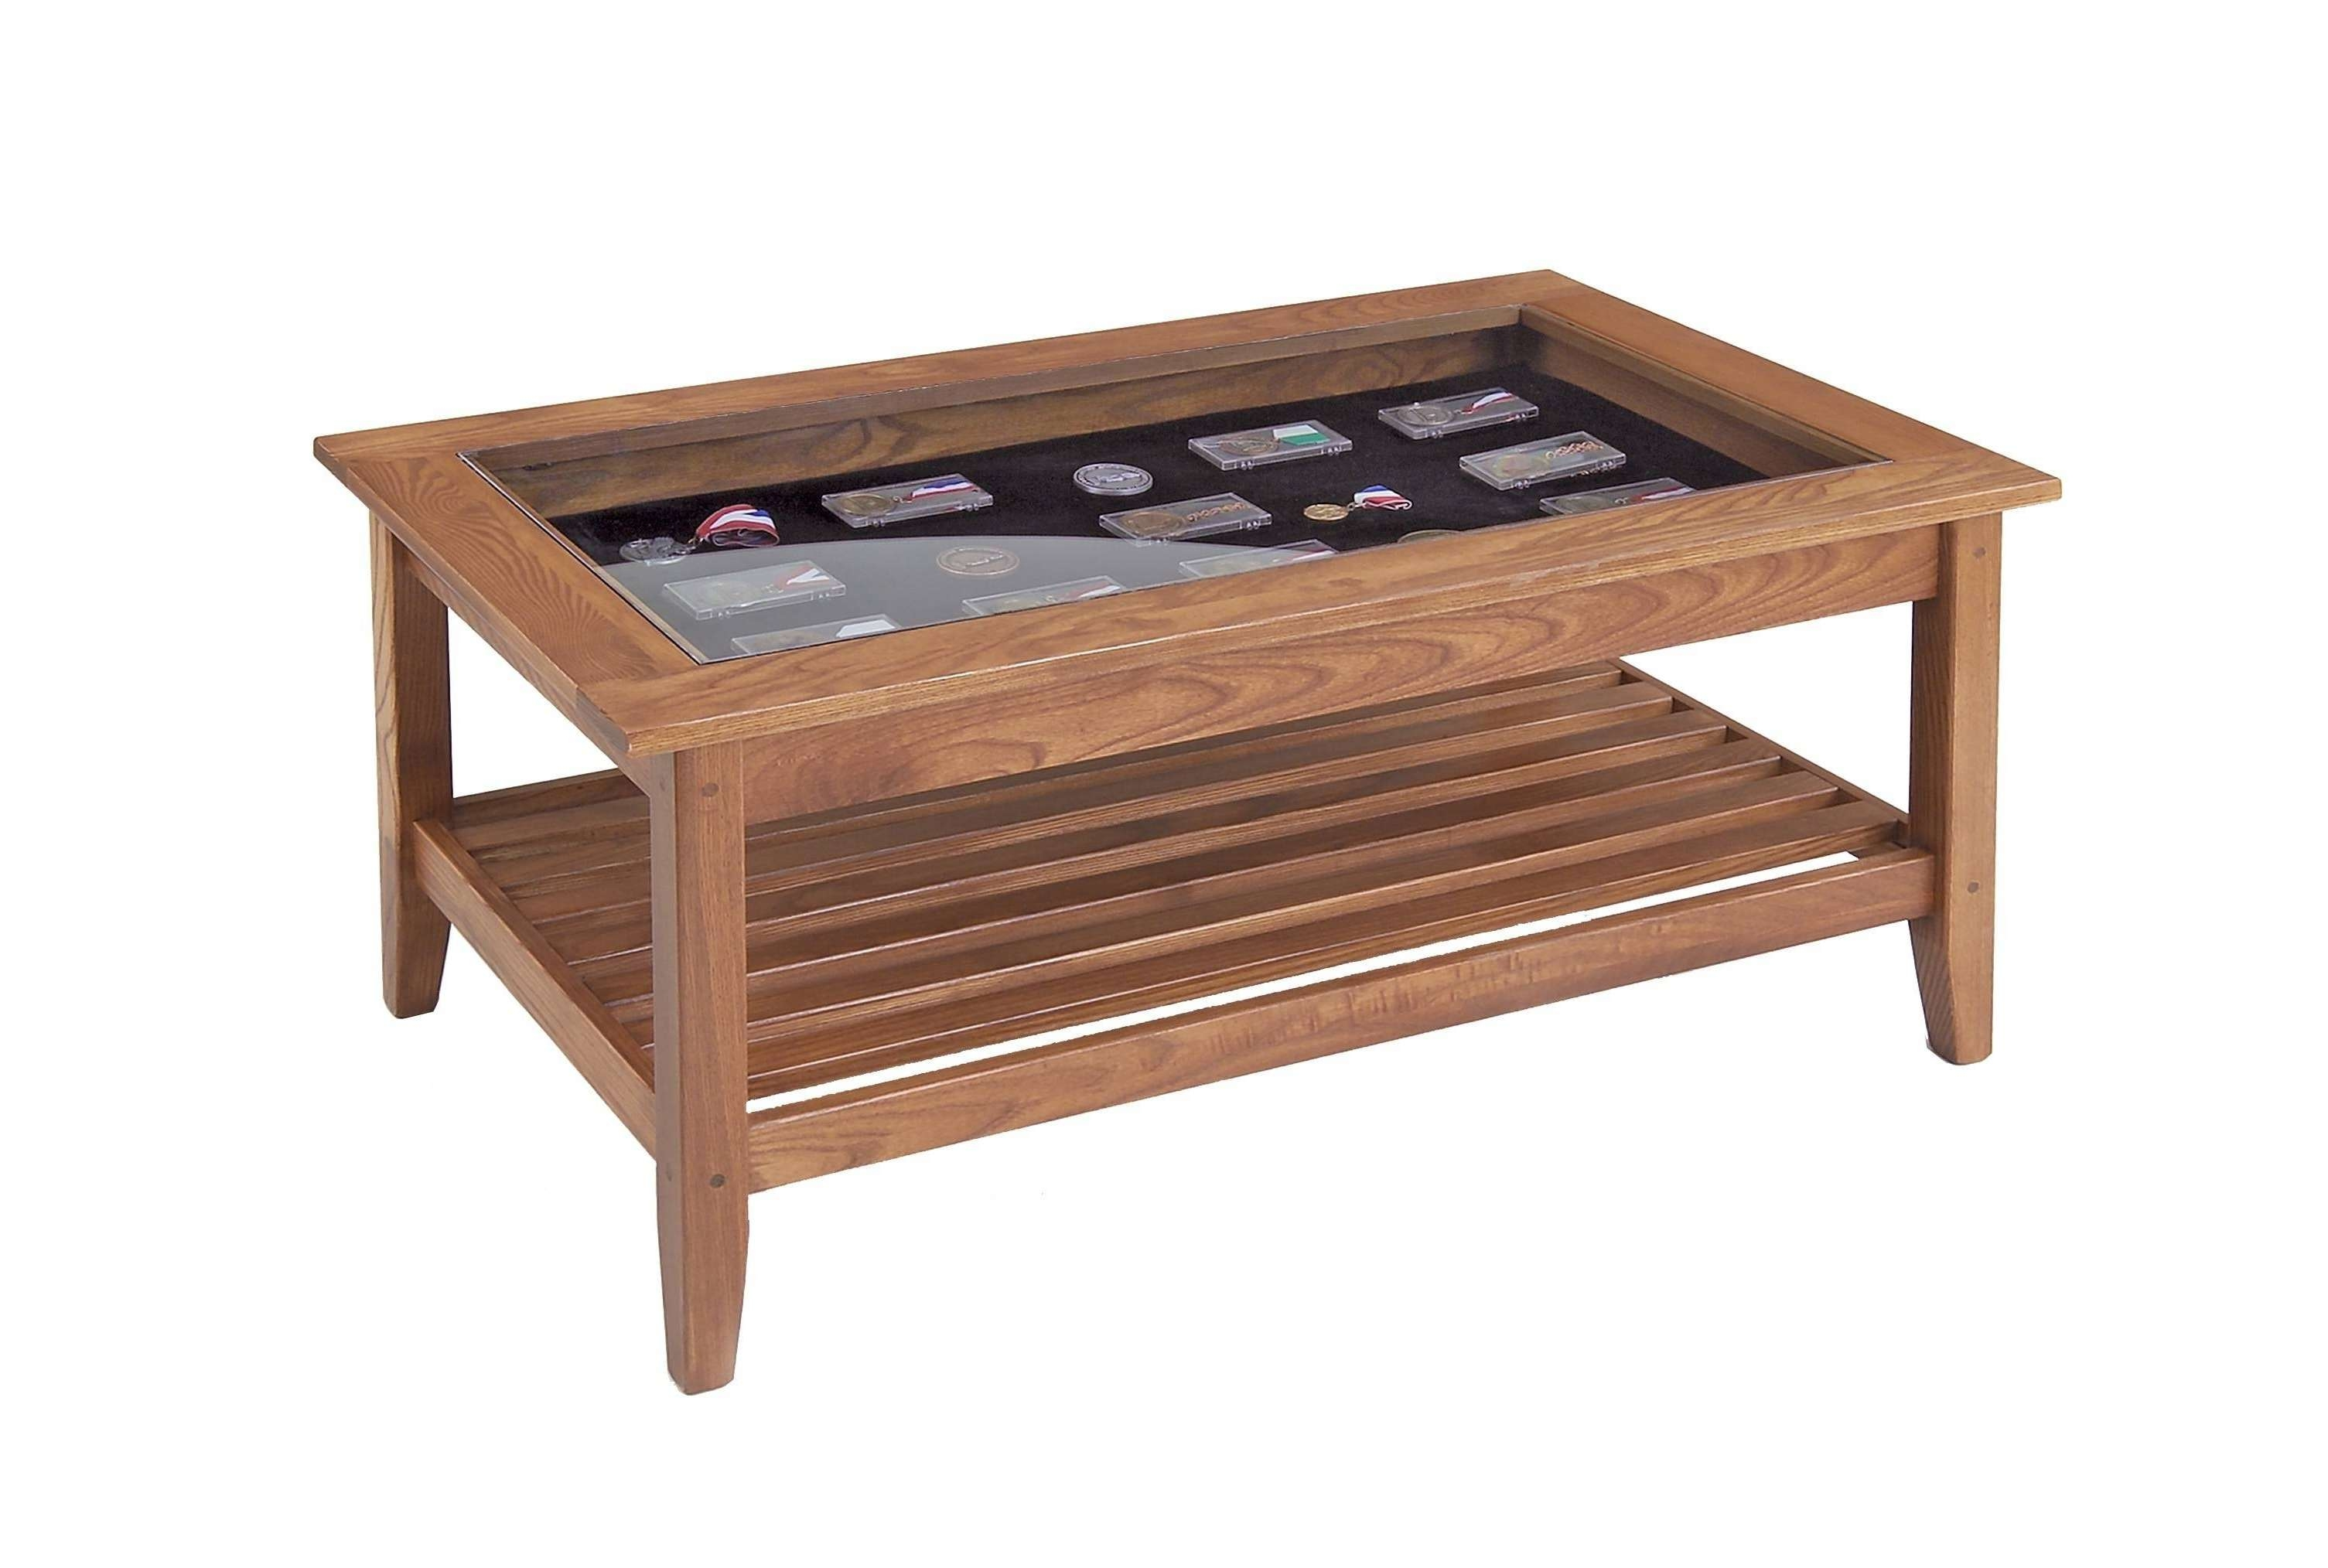 Best Coffee Table Glass Top Display Drawer Within 30 Best Ideas Of For Most Up To Date Coffee Tables With Glass Top Display Drawer (View 1 of 20)